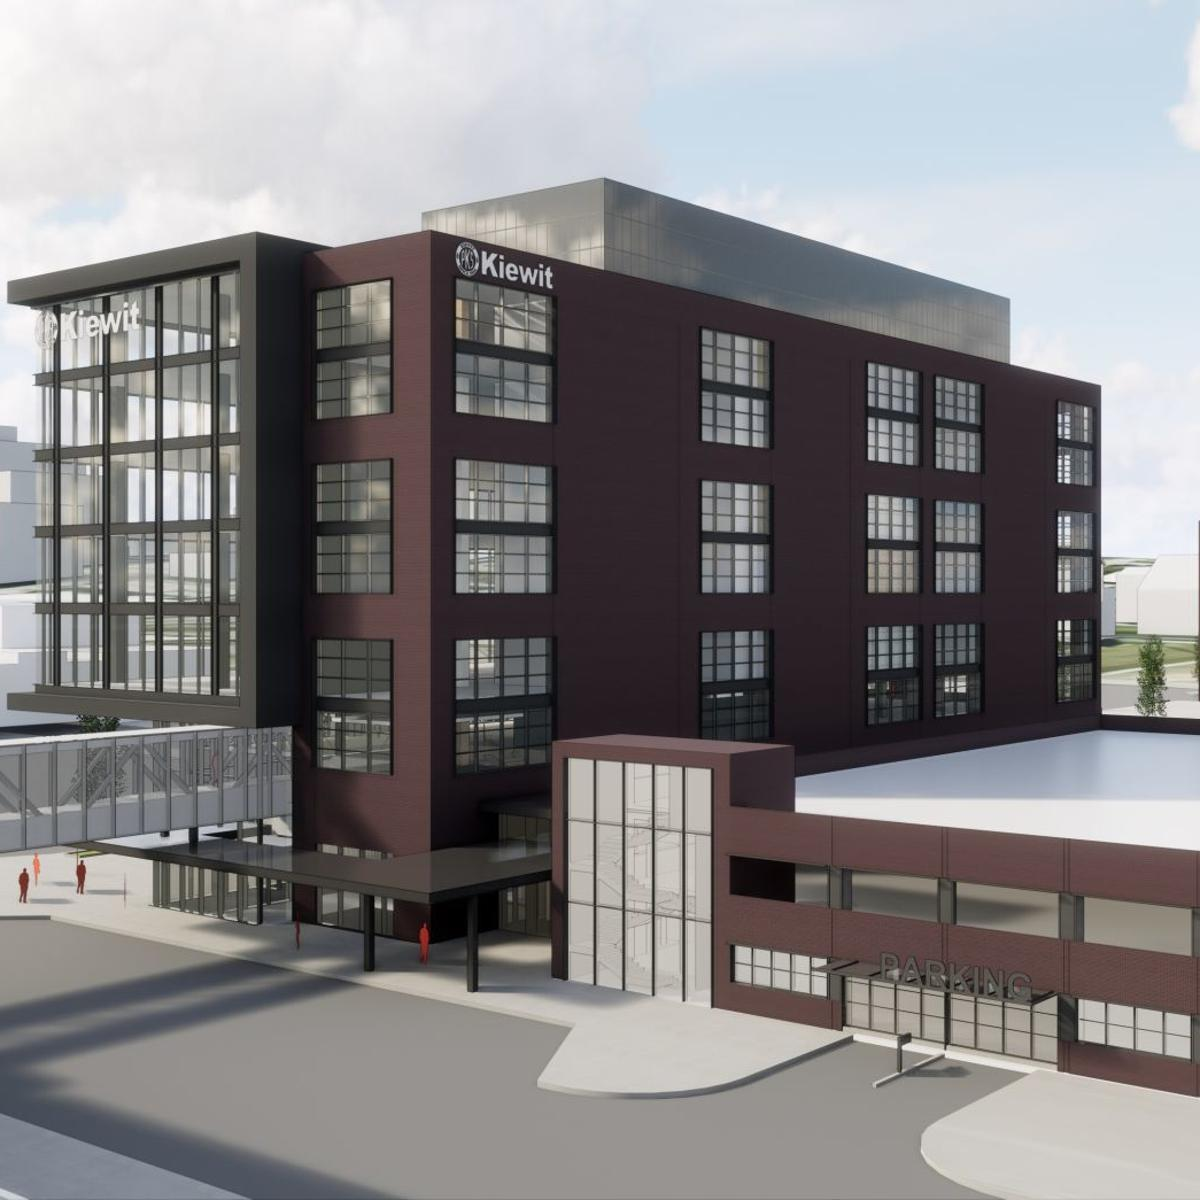 Developers of Kiewit headquarters ask city to waive